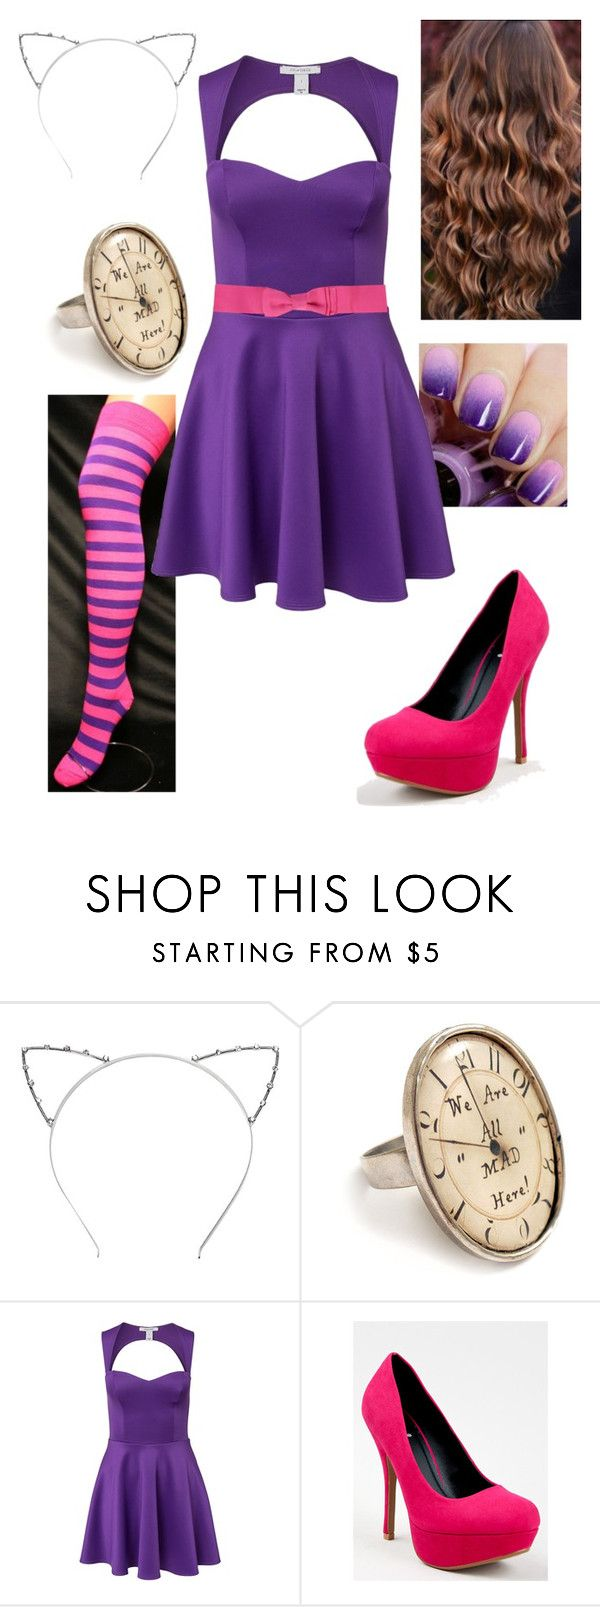 """""""Disney Bound - Cheshire Cat"""" by briony-jae ❤ liked on Polyvore featuring Oneness, Qupid and Lanvin"""